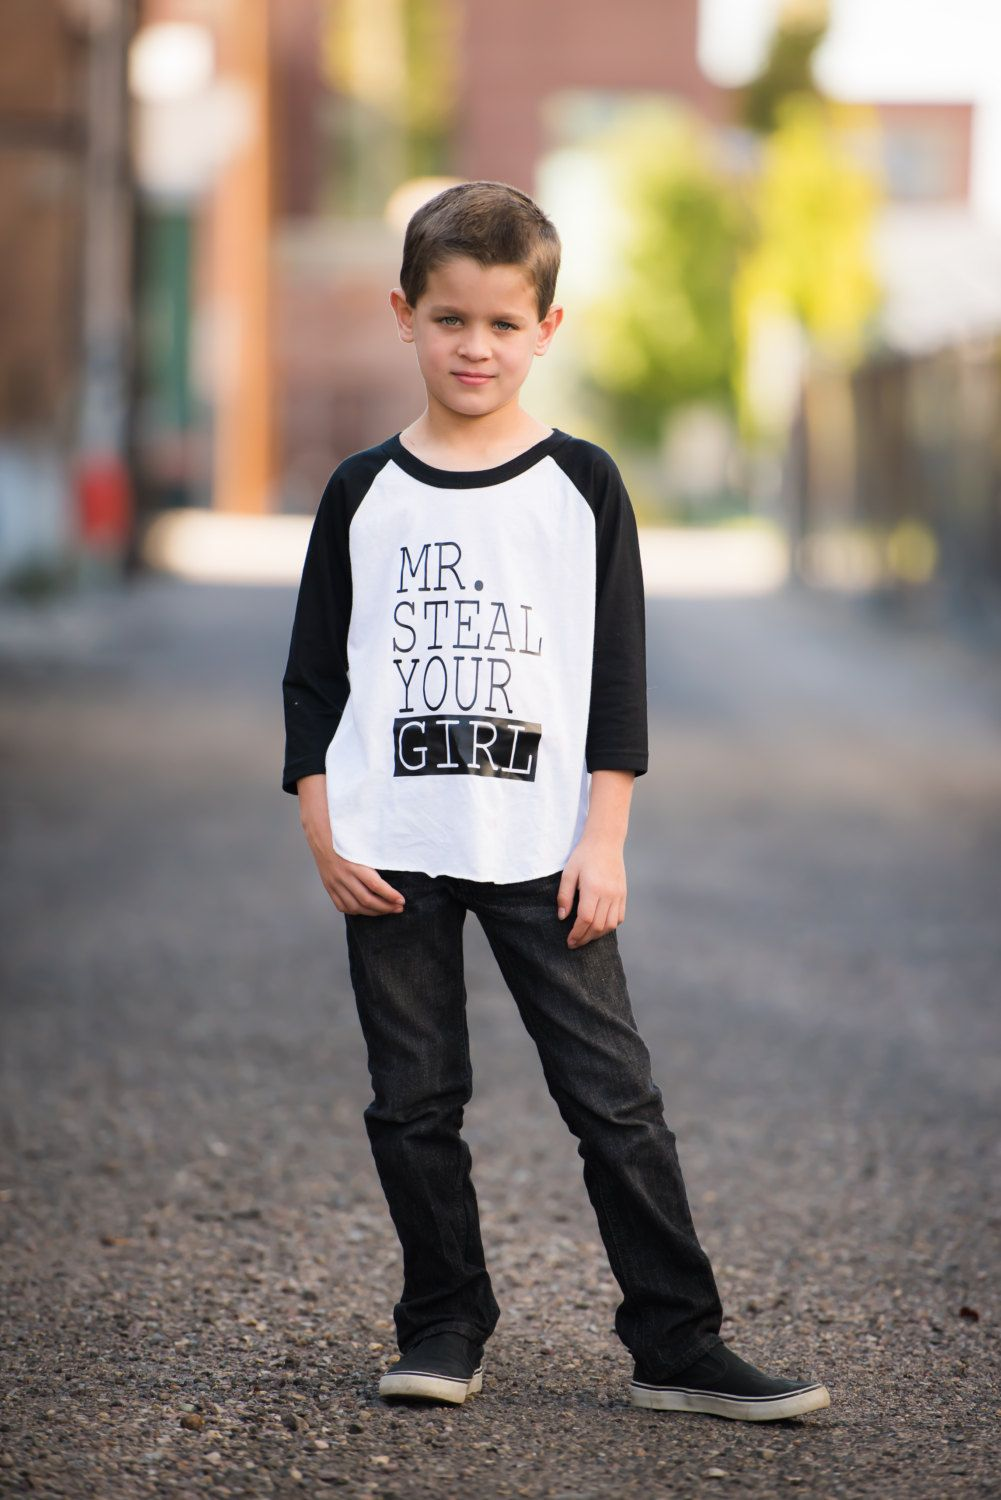 Steal Your Girl Funny Boys Shirt Back To School Hipster Boys